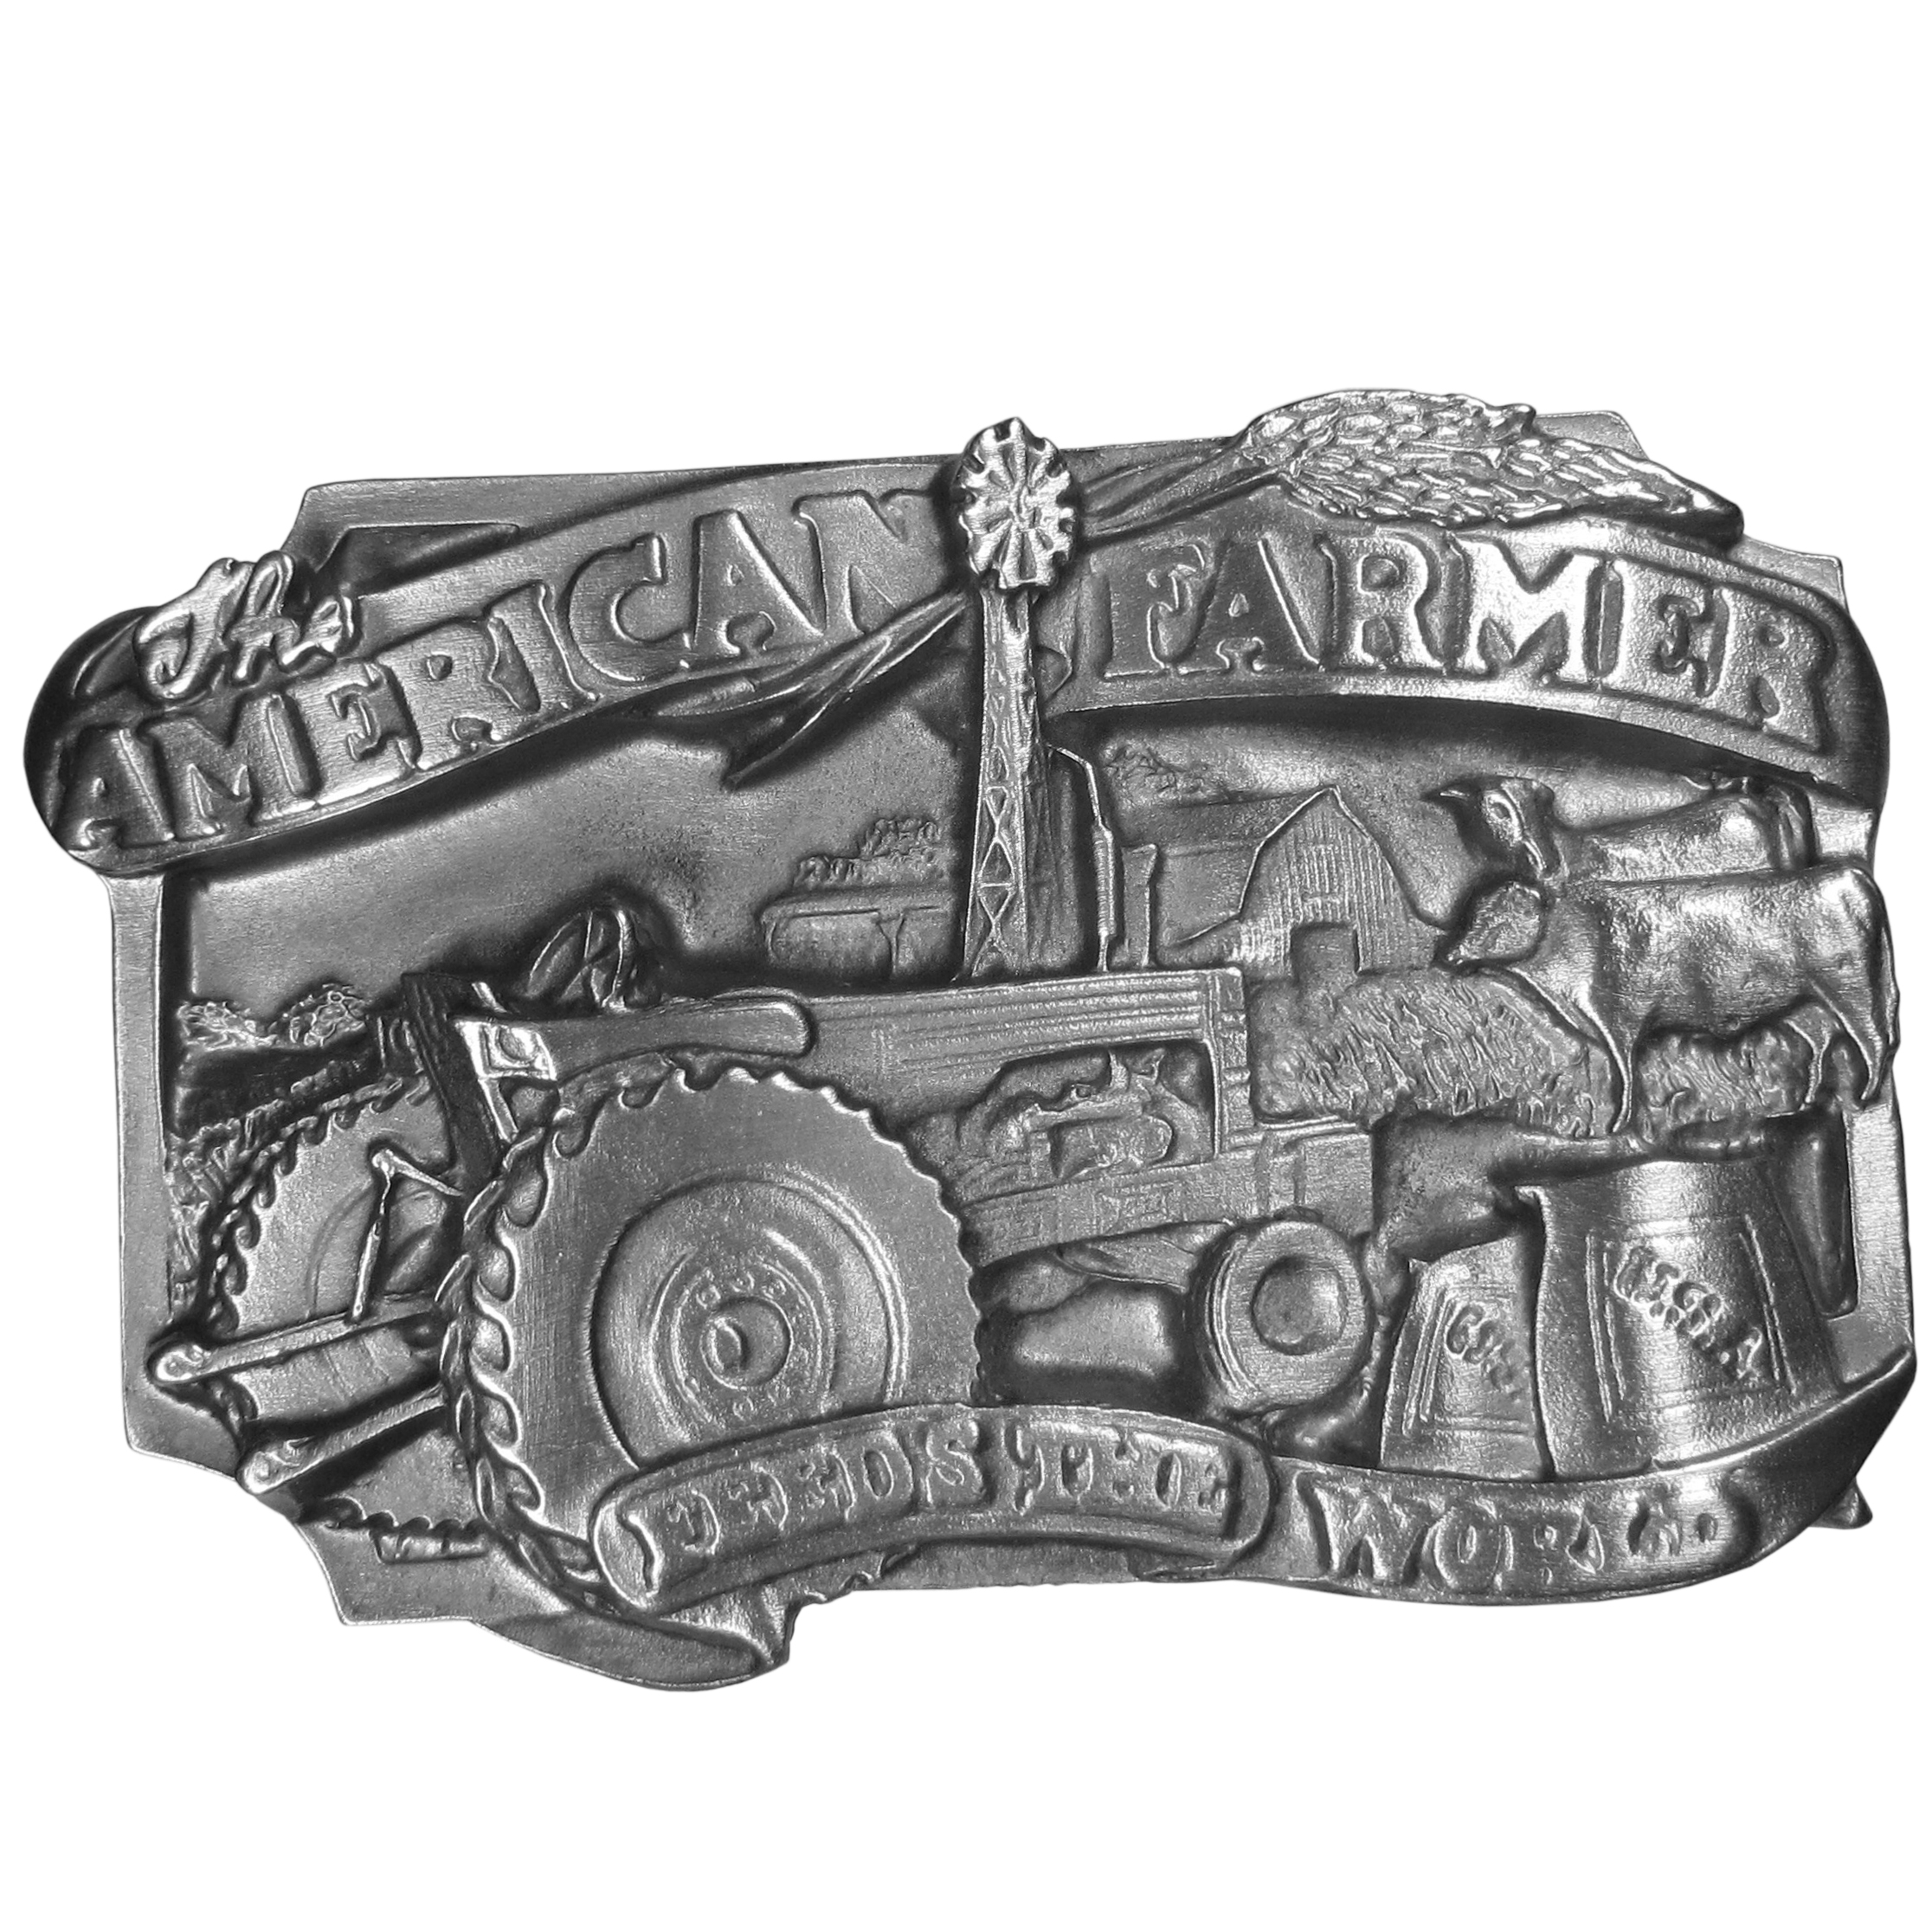 "American Farmer Antiqued Belt Buckle - This beautifully carved image has the words ""The American Farmer"" on a banner across the top and Feeds The World on a banner on the bottom. Images of a tractor, a windmill, a barn, two cows, ""USA"" grain bags and a farm are in the center of this exquisite buckle. This antiqued buckle is made of fully cast metal with a standard bale that fits up to 2"" belts.  Siskiyou's unique buckle designs often become collector's items and are unequaled in craftsmanship."